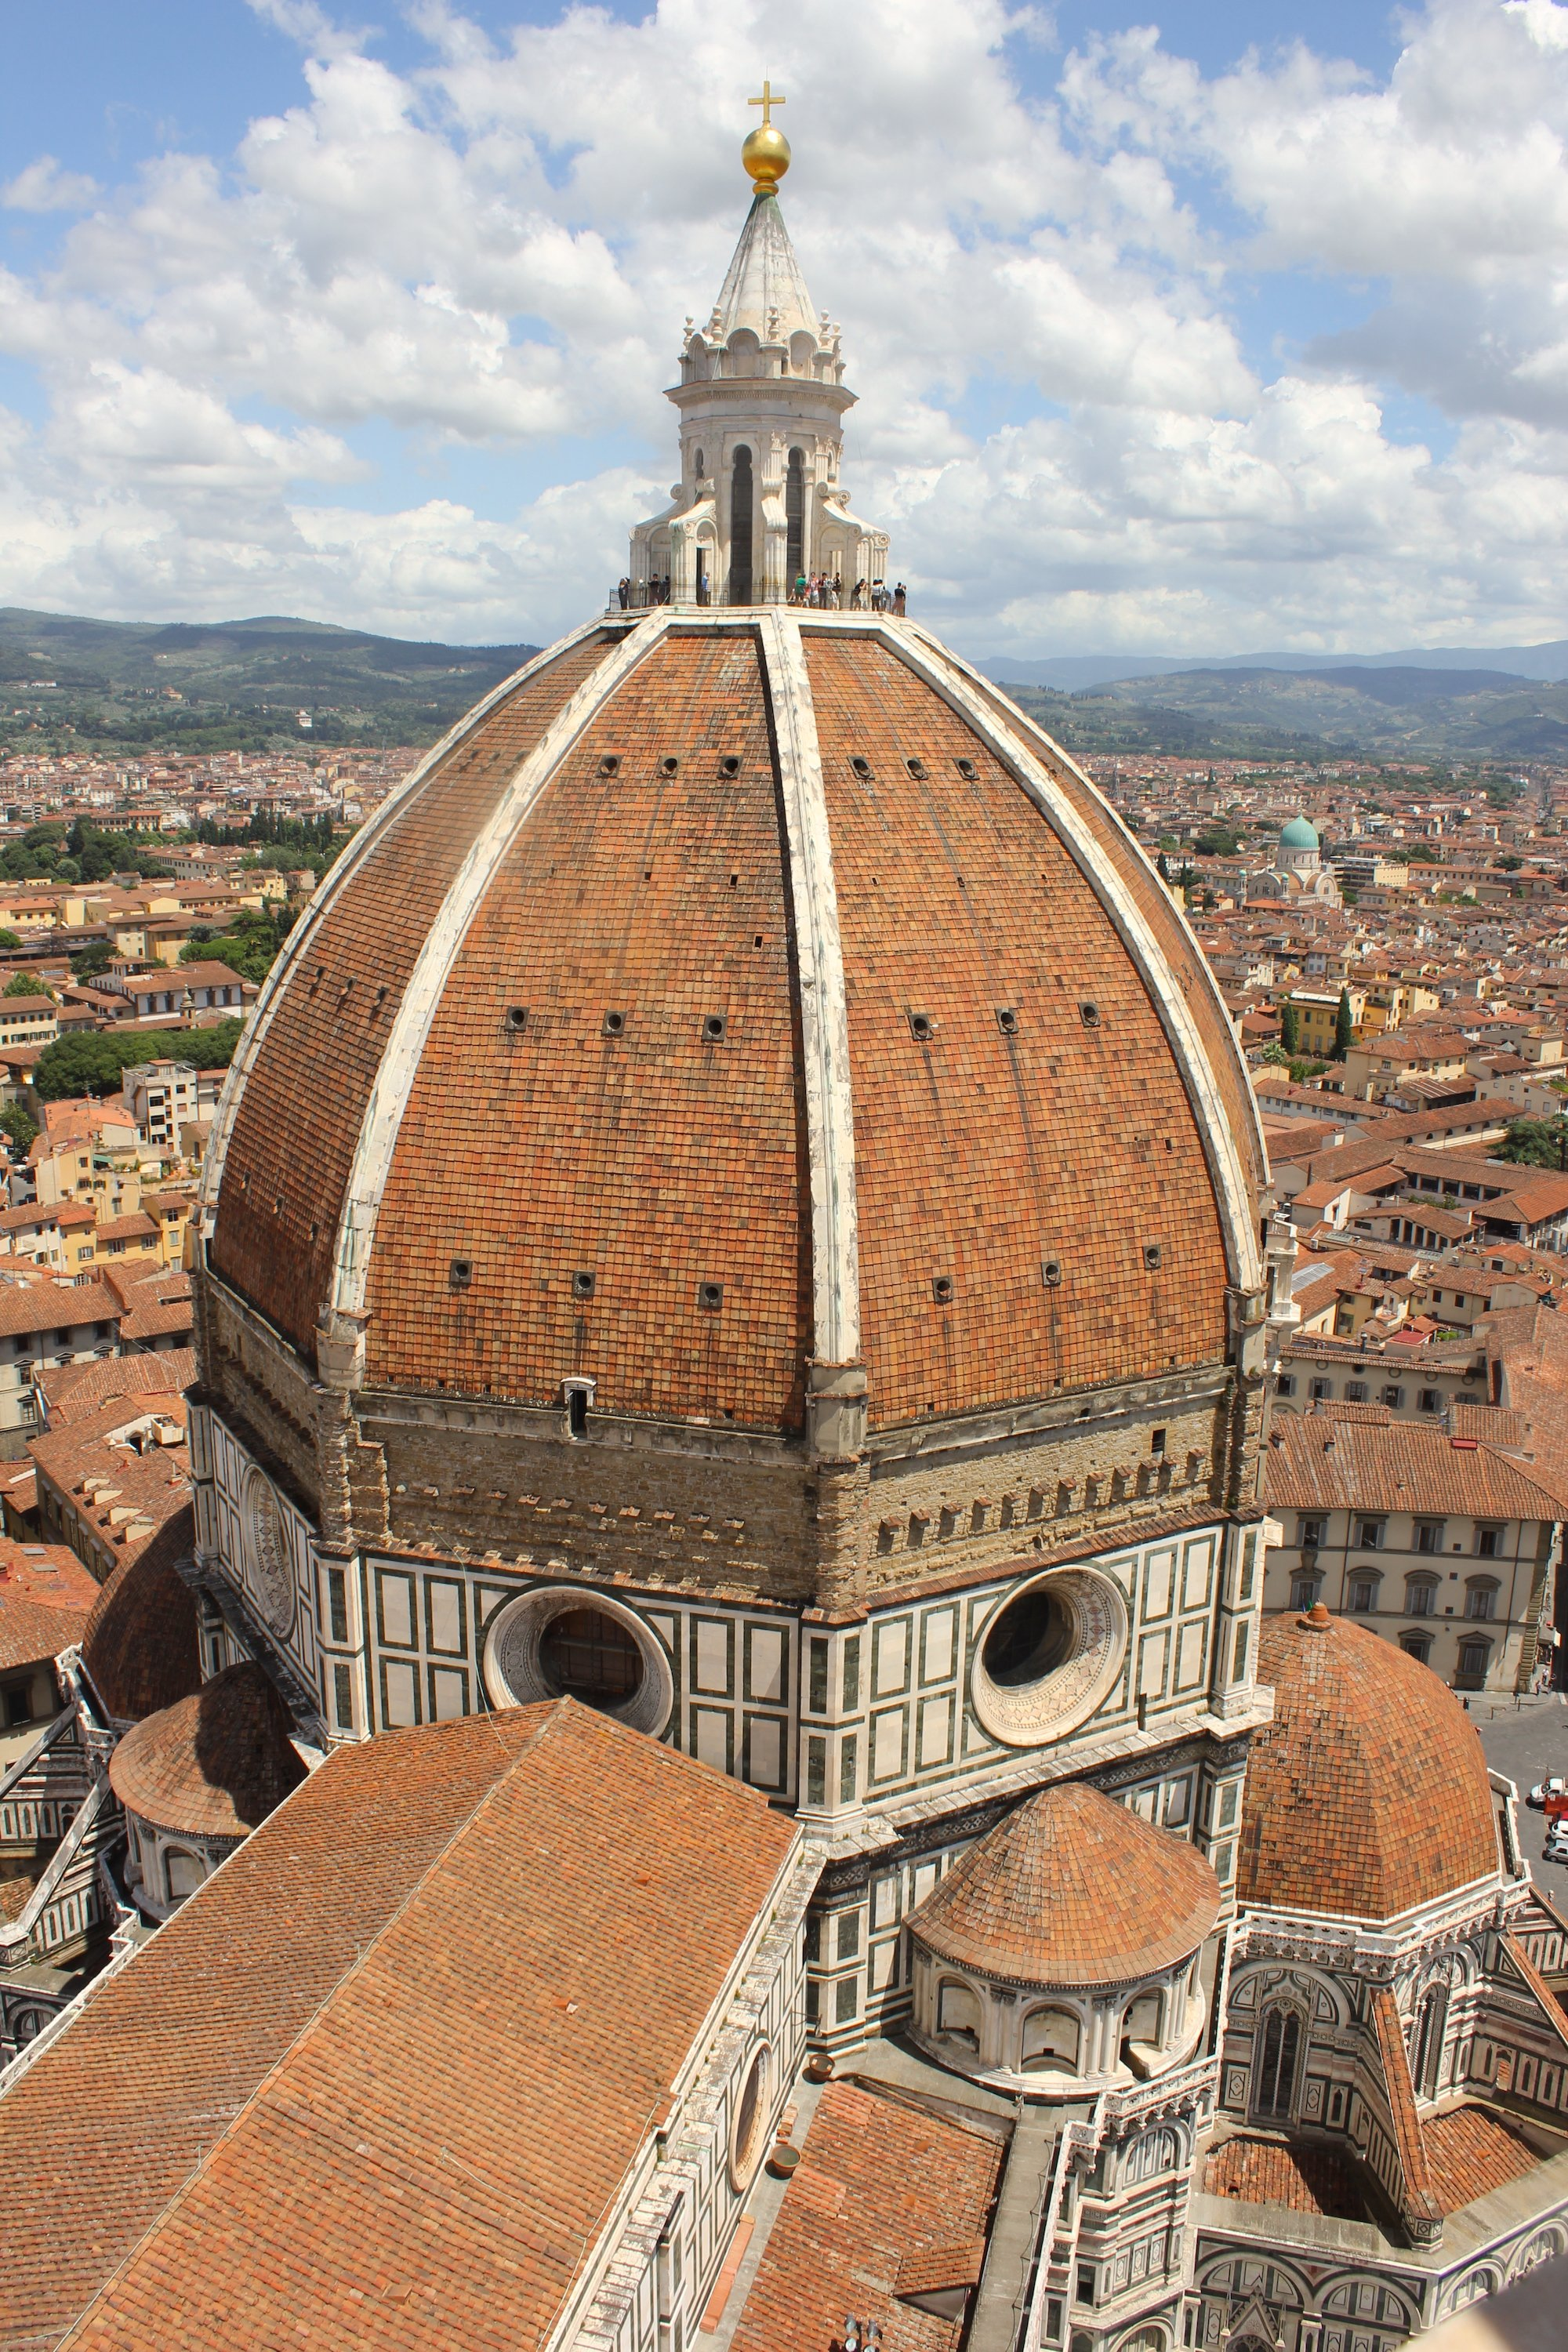 Dome of Florence Cathedral by Brunelleschi (Illustration) - World History  Encyclopedia